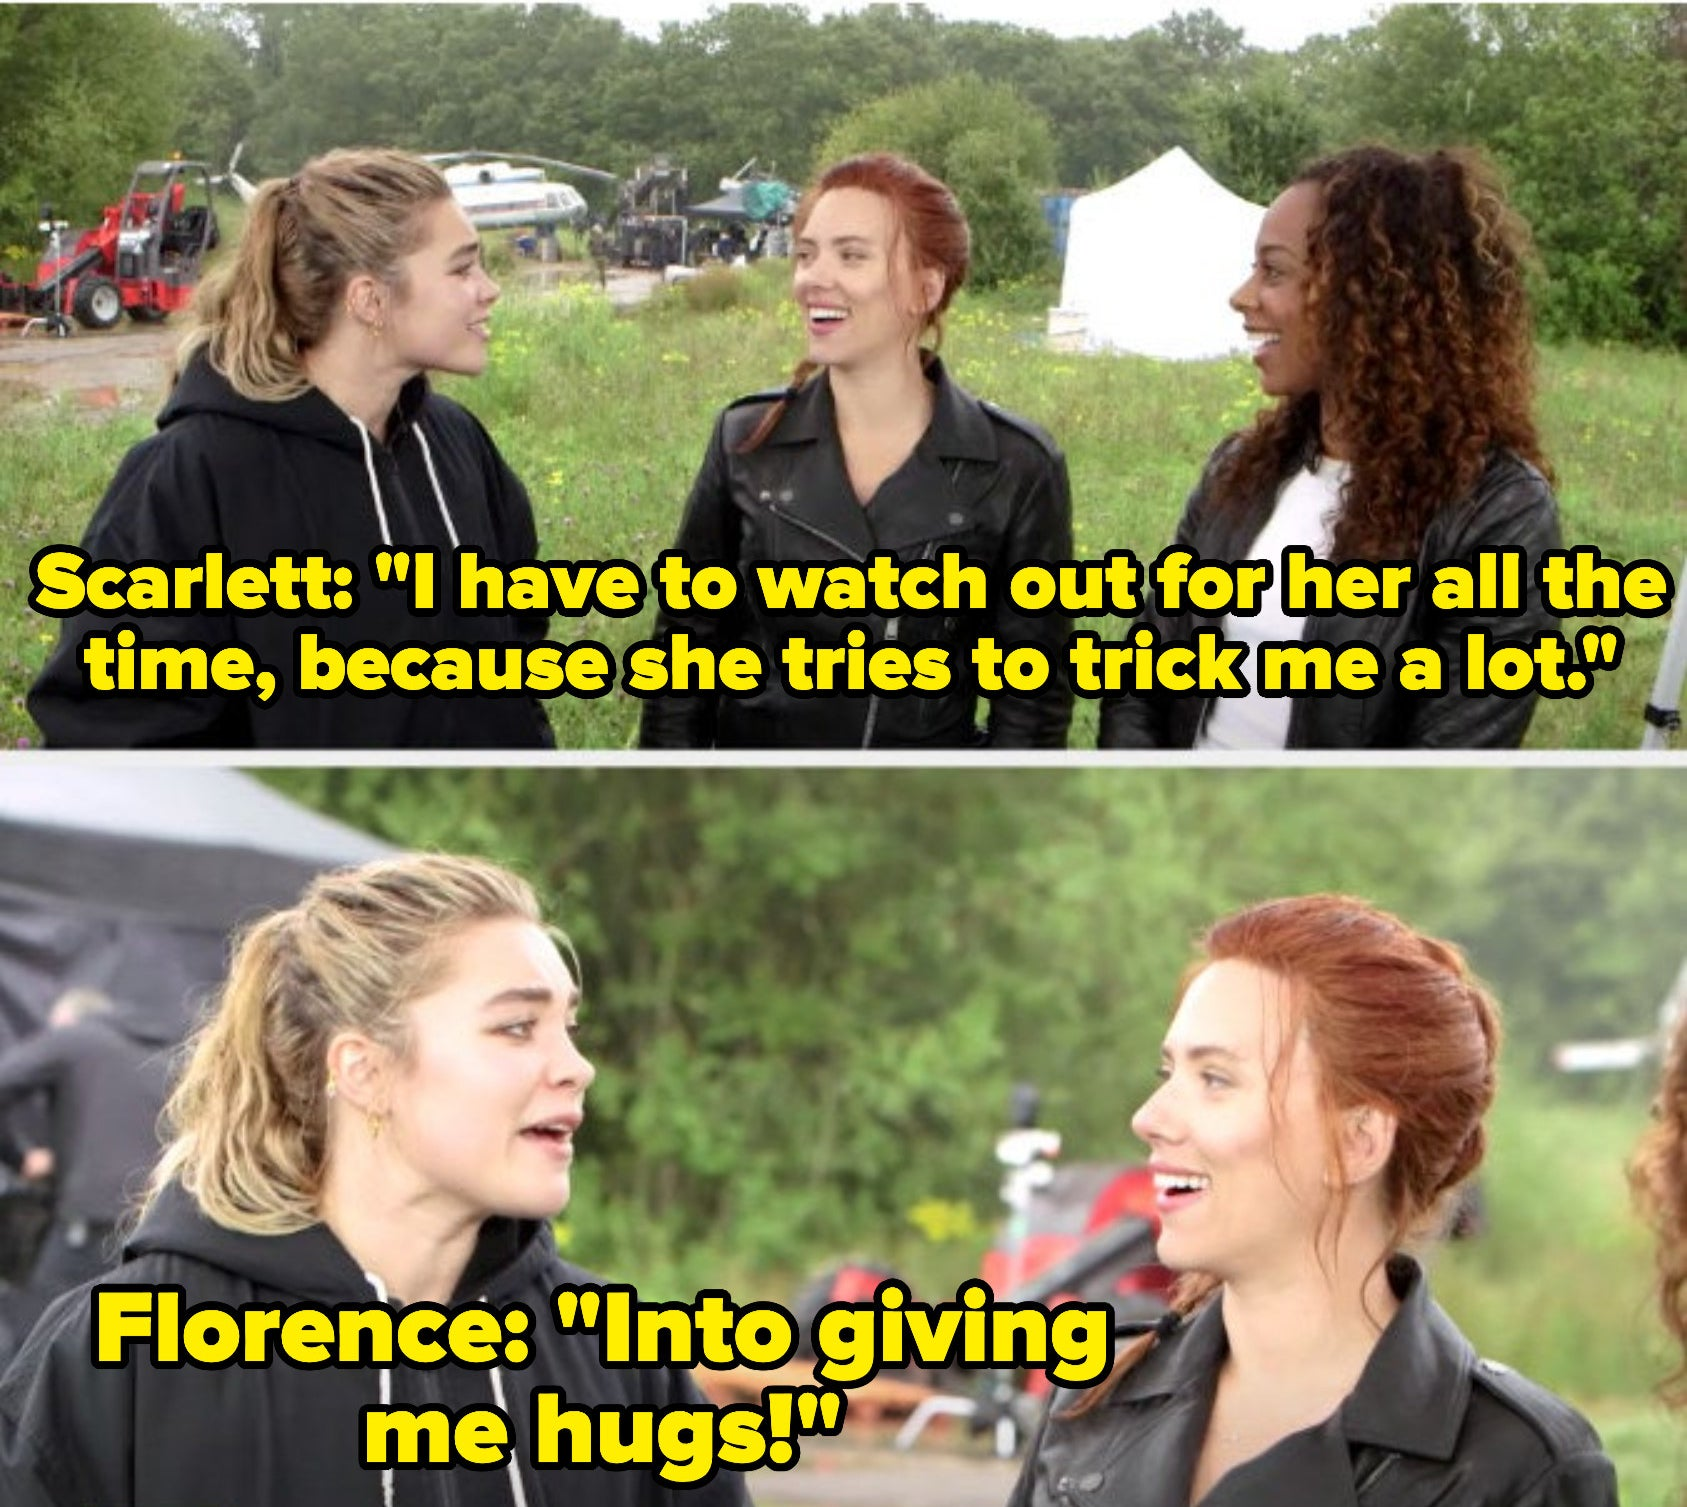 Florence Pugh talking about how she tricks scarlett johansson into giving her hugs